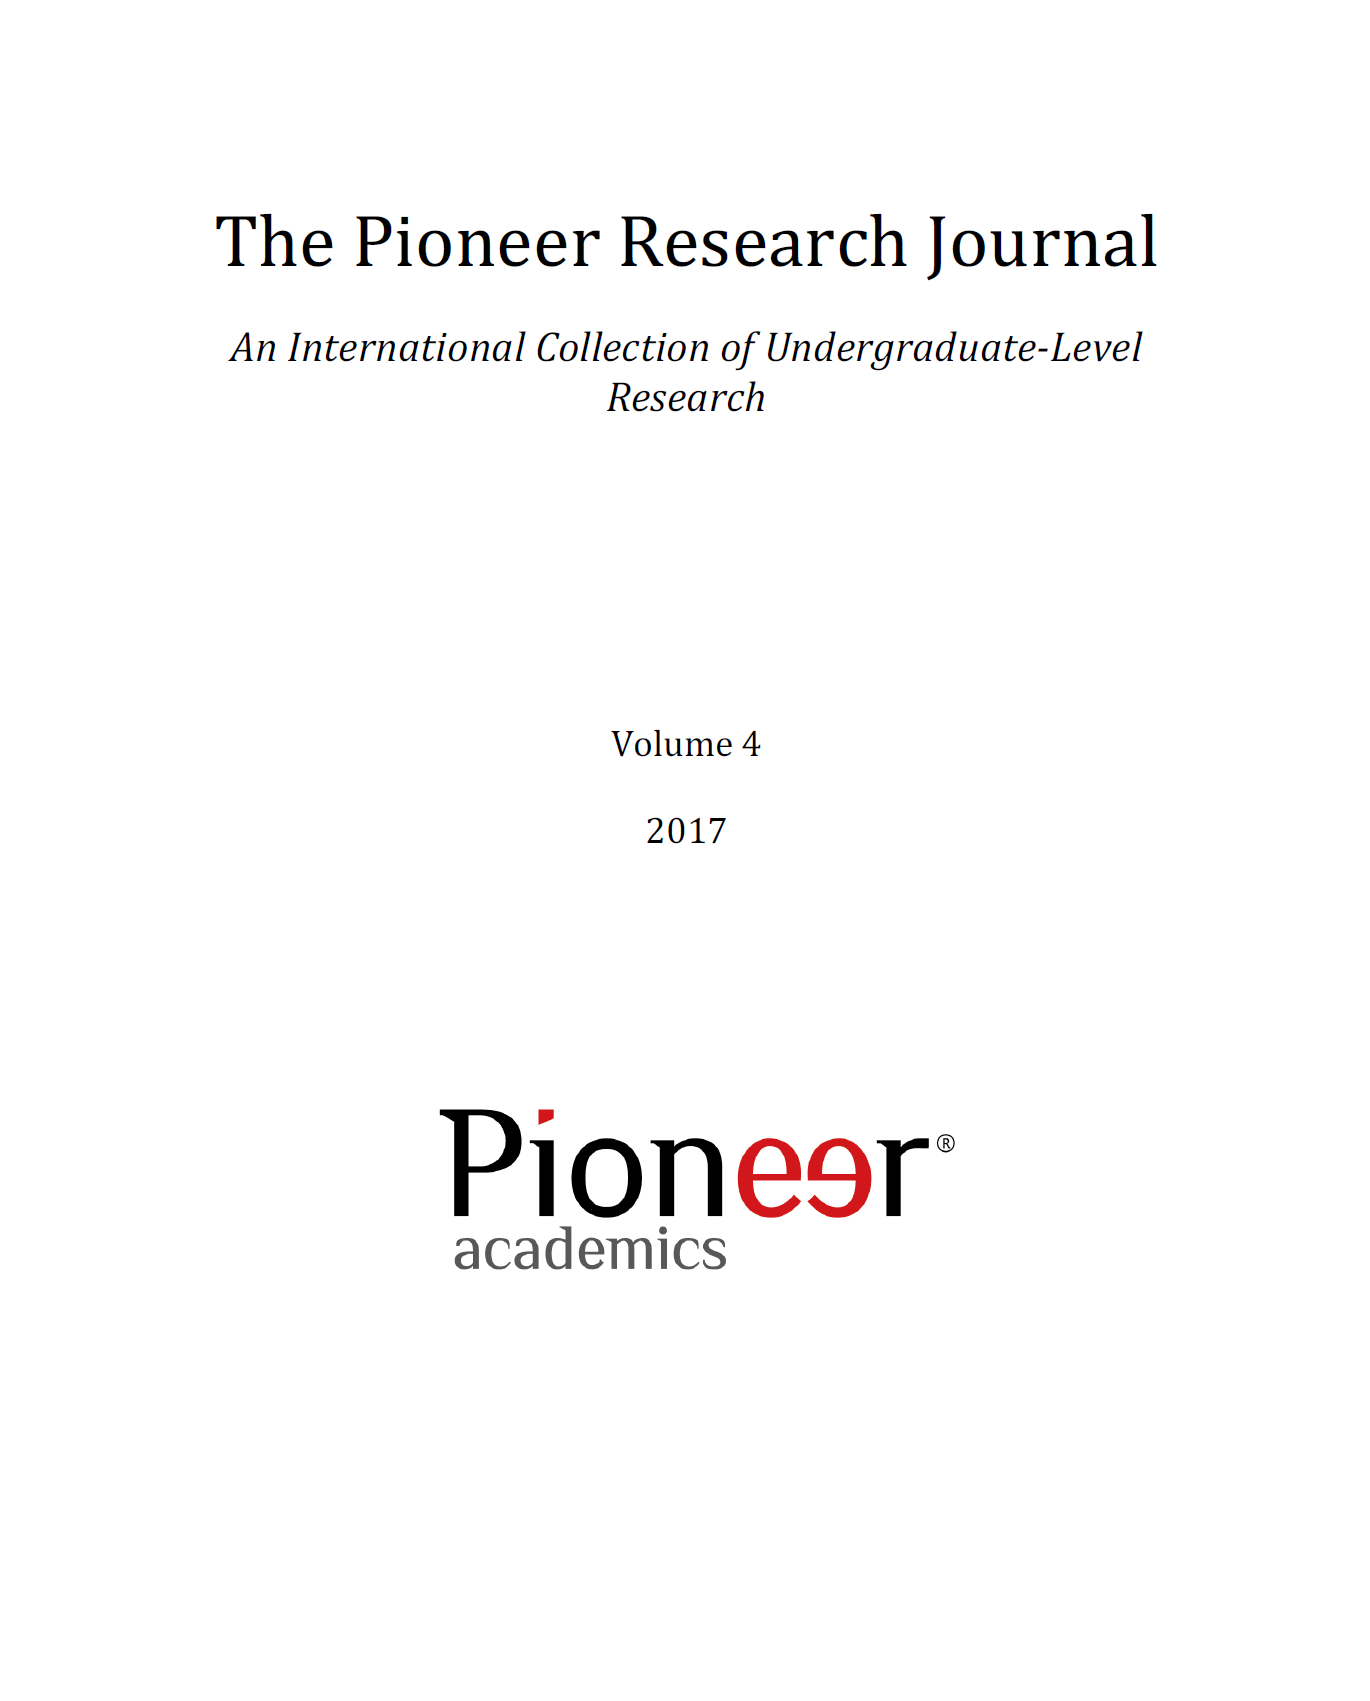 The Pioneer Research Journal